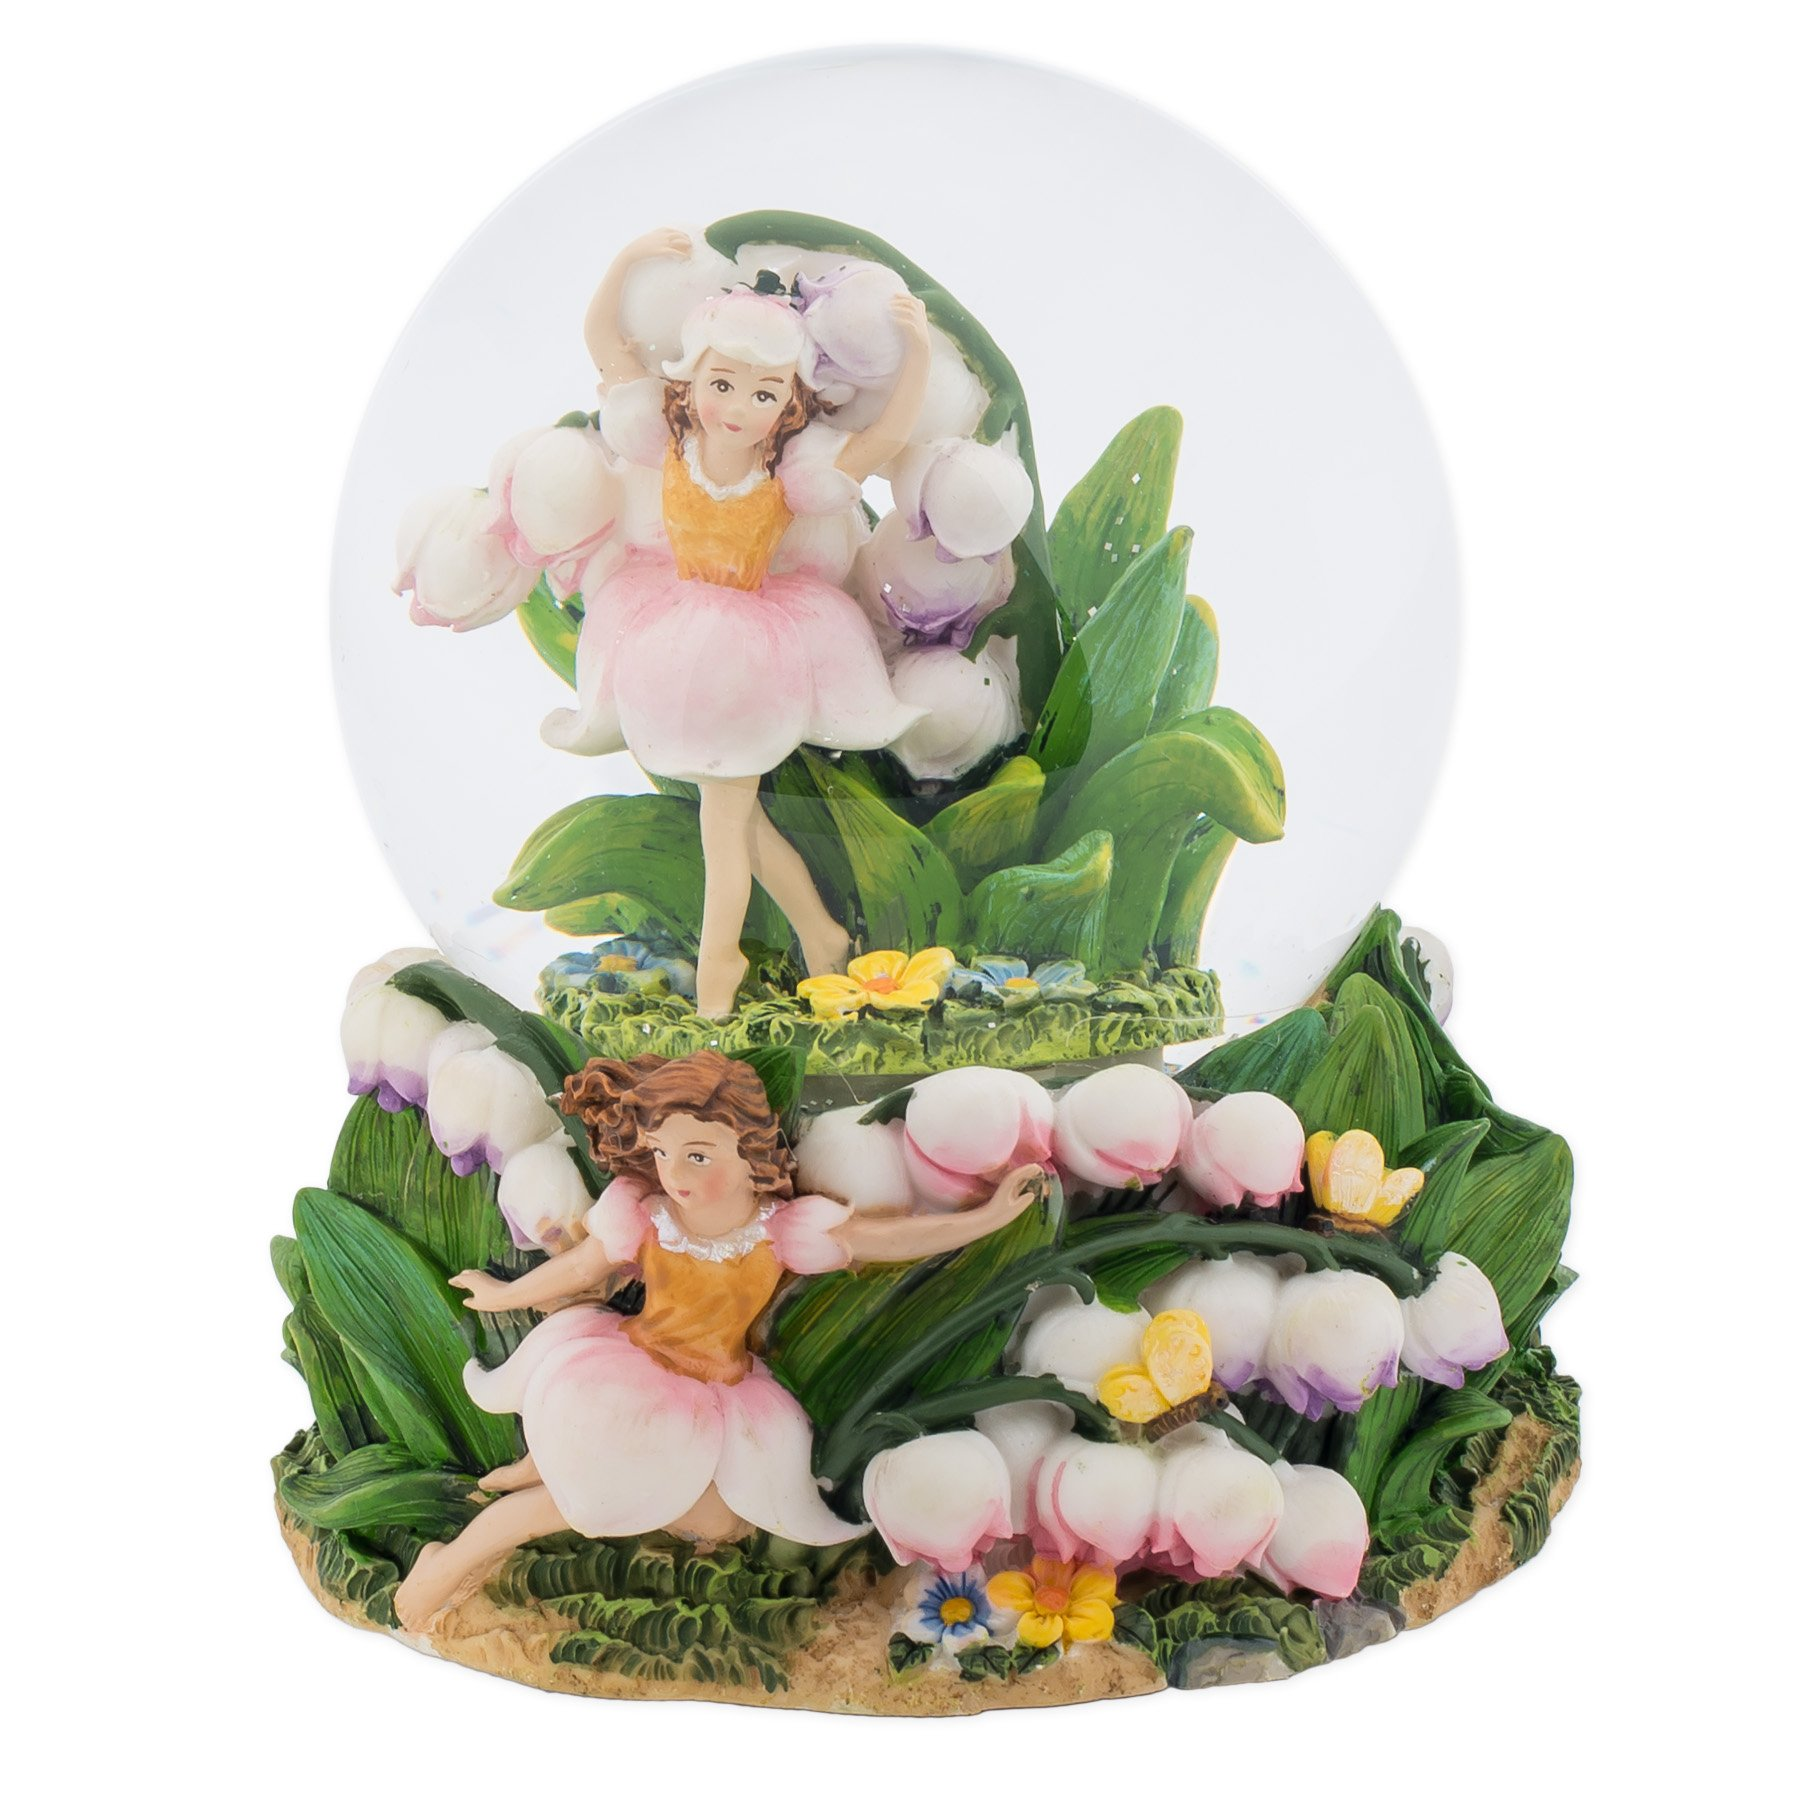 Fairies Dancing in Tulips 100MM Music Water Globe Plays Tune Dance of the Sugar Plum Fairy by Cadona International, Inc